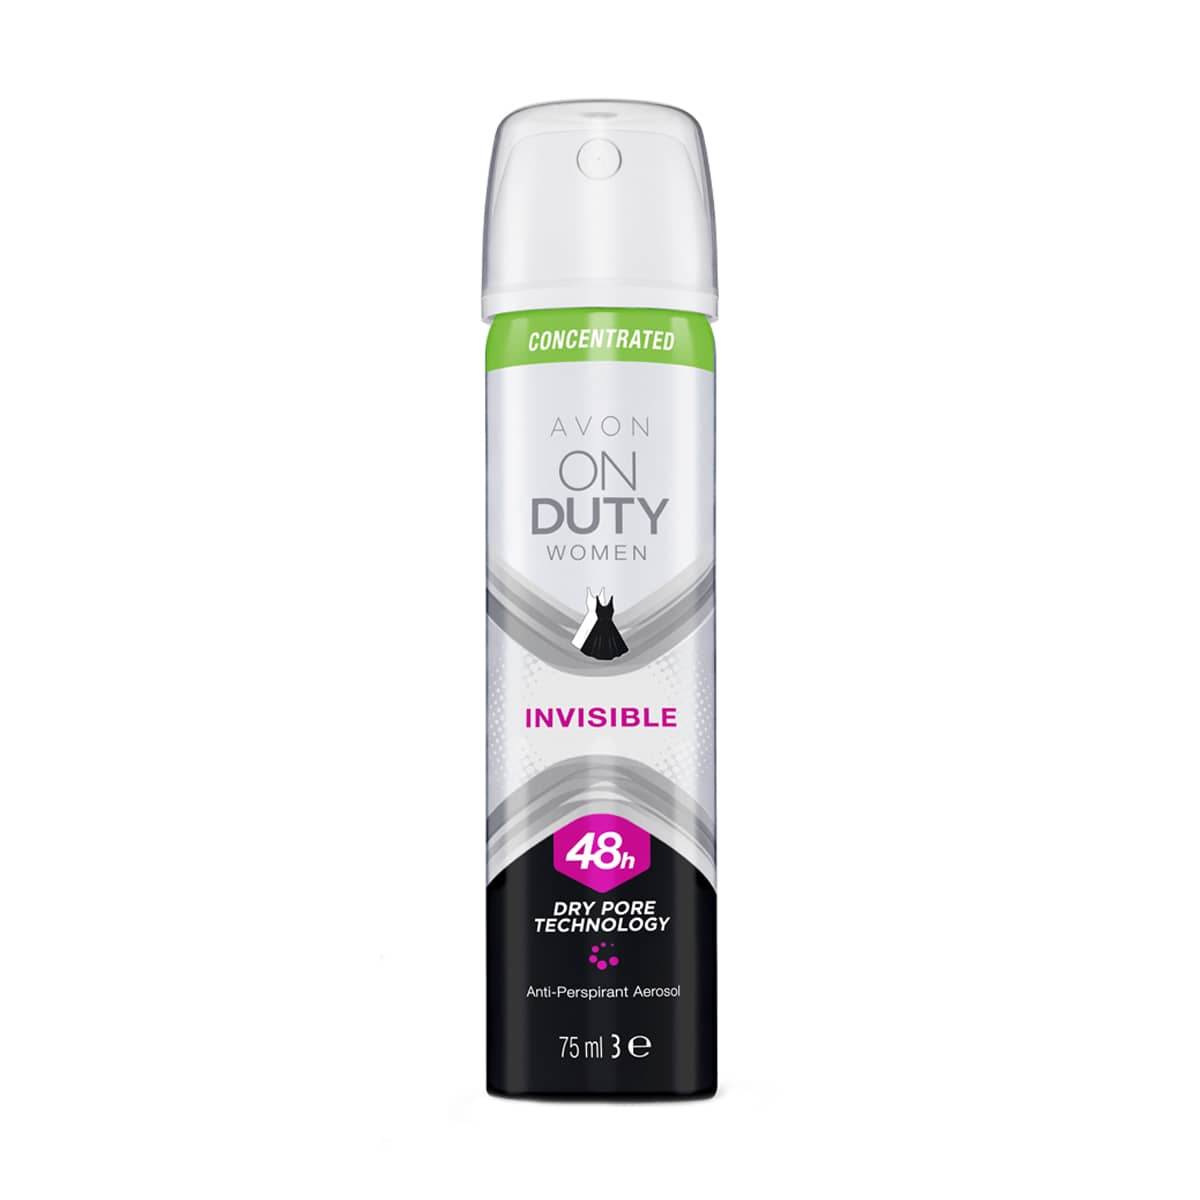 On Duty Invisible Anti-Perspirant Aerosol Compressed for Her 1338881 75ml